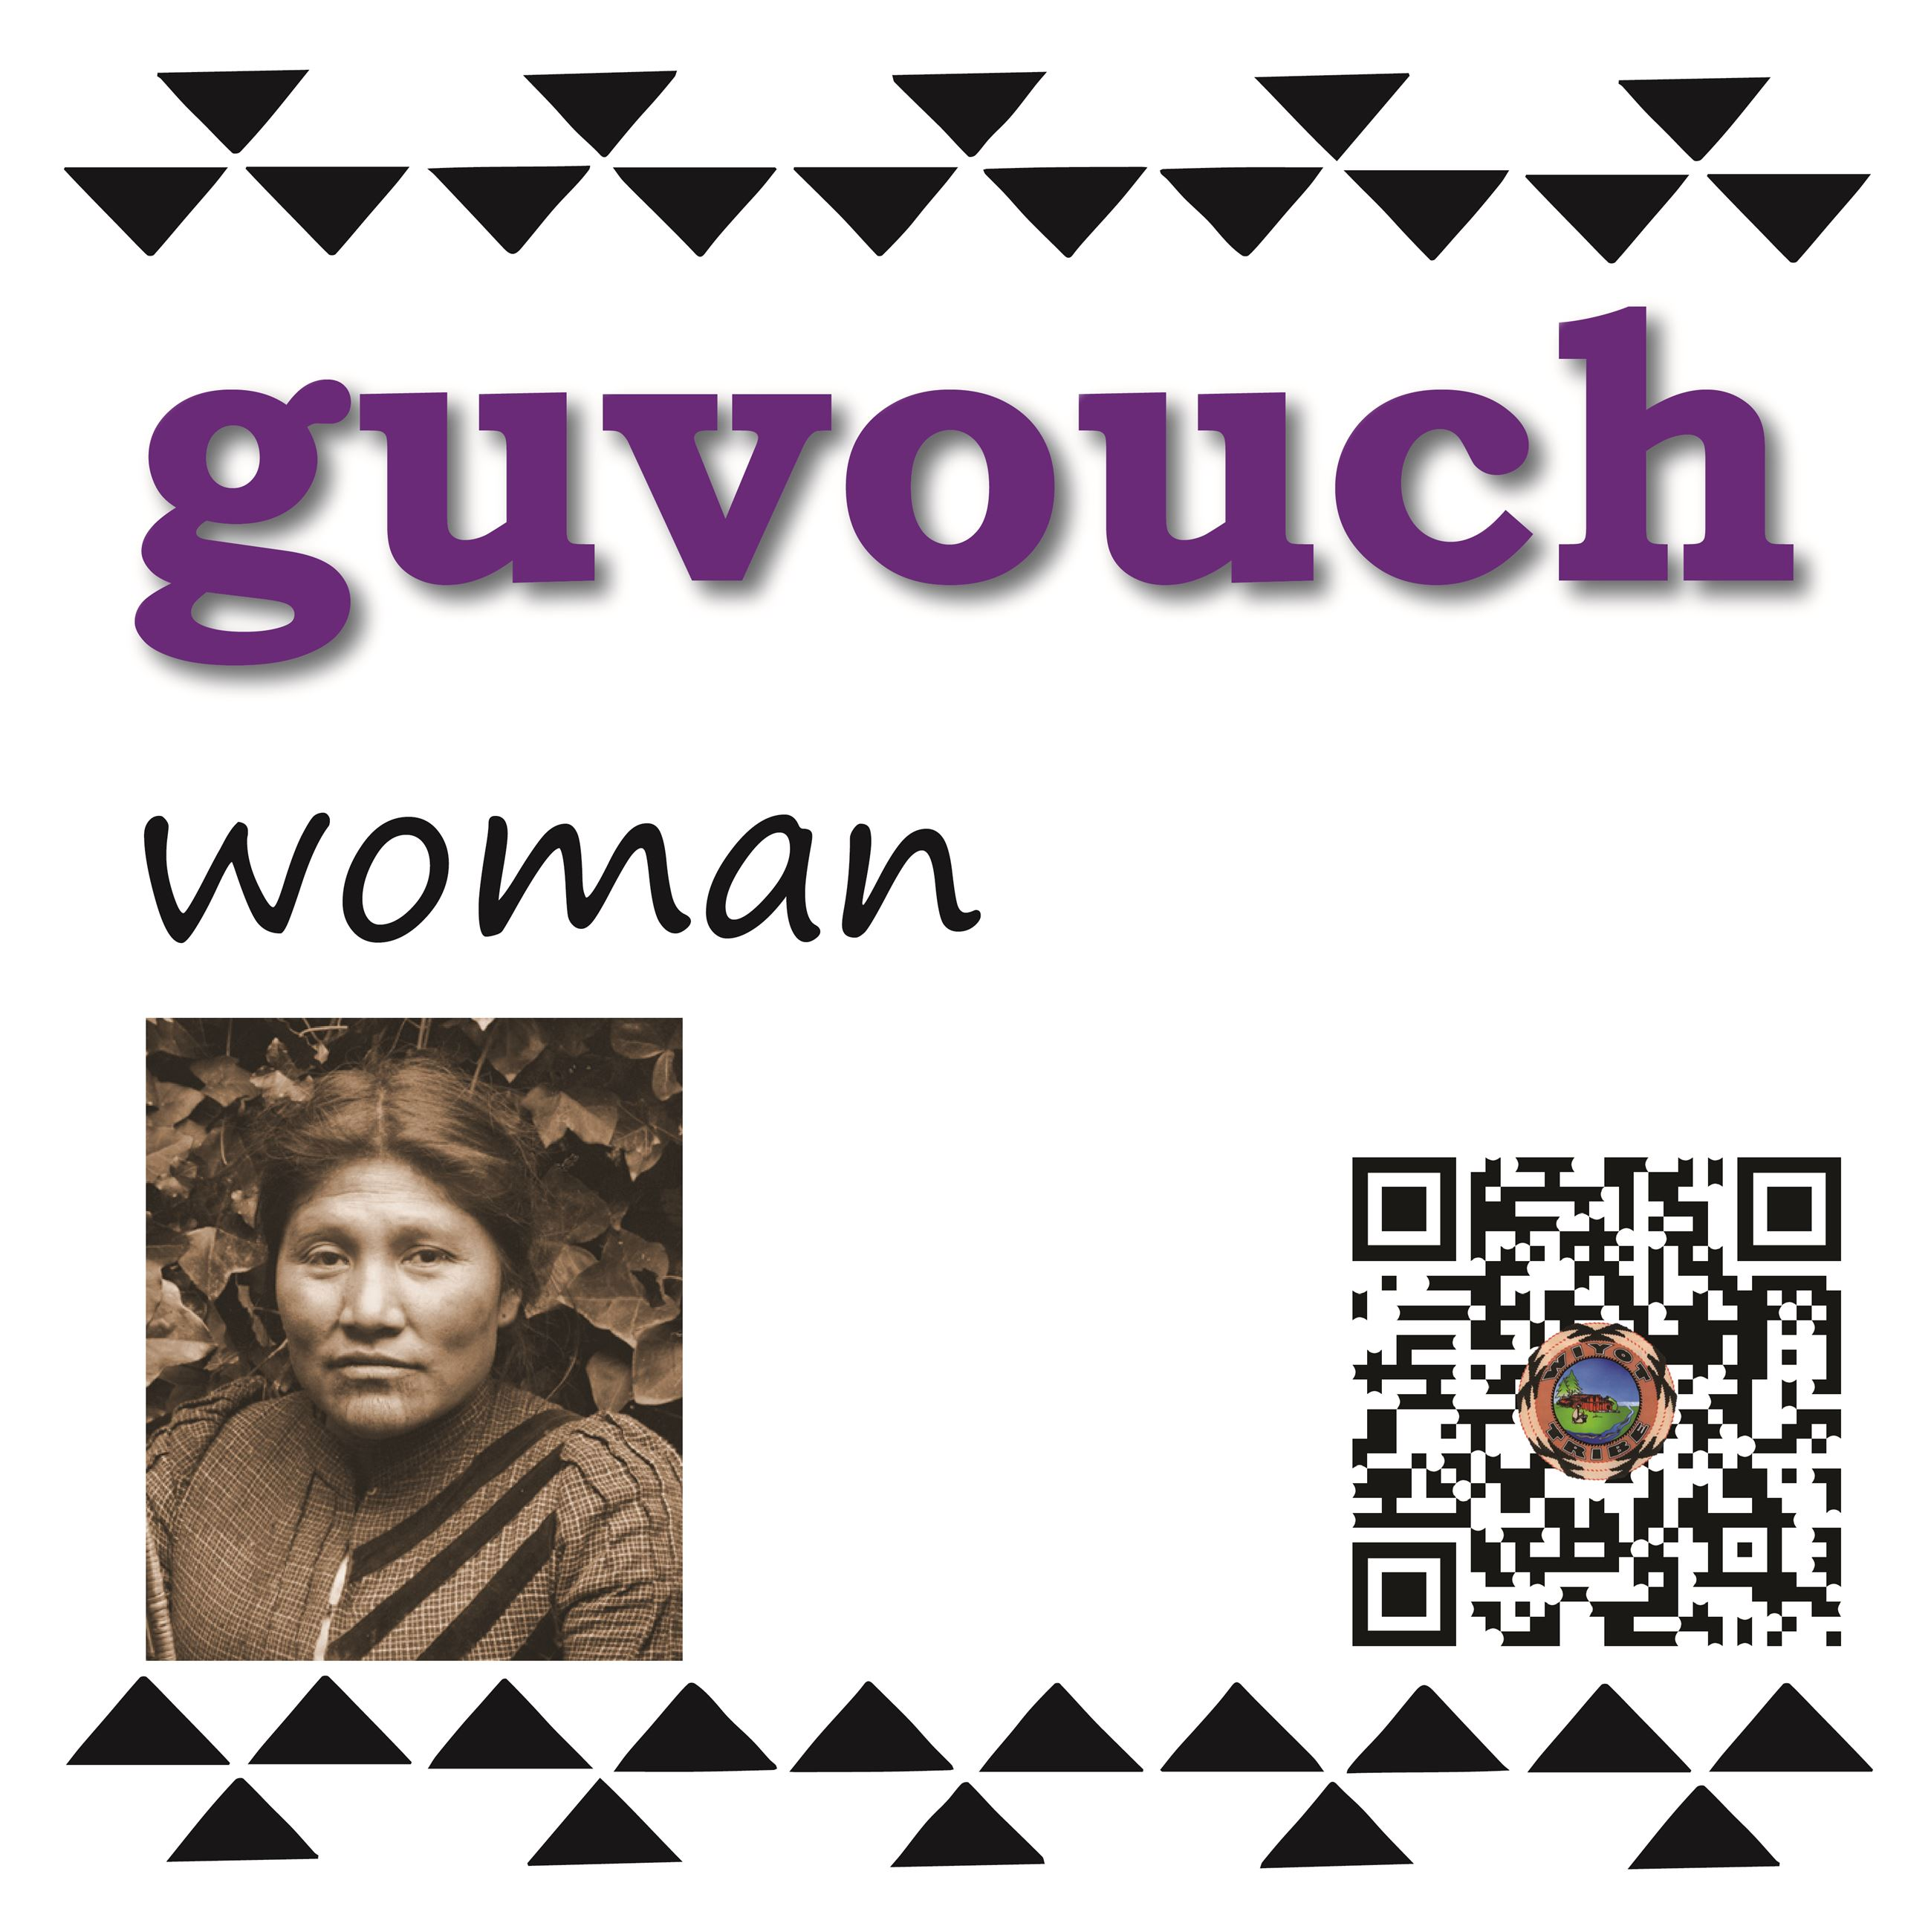 guvouch (woman)